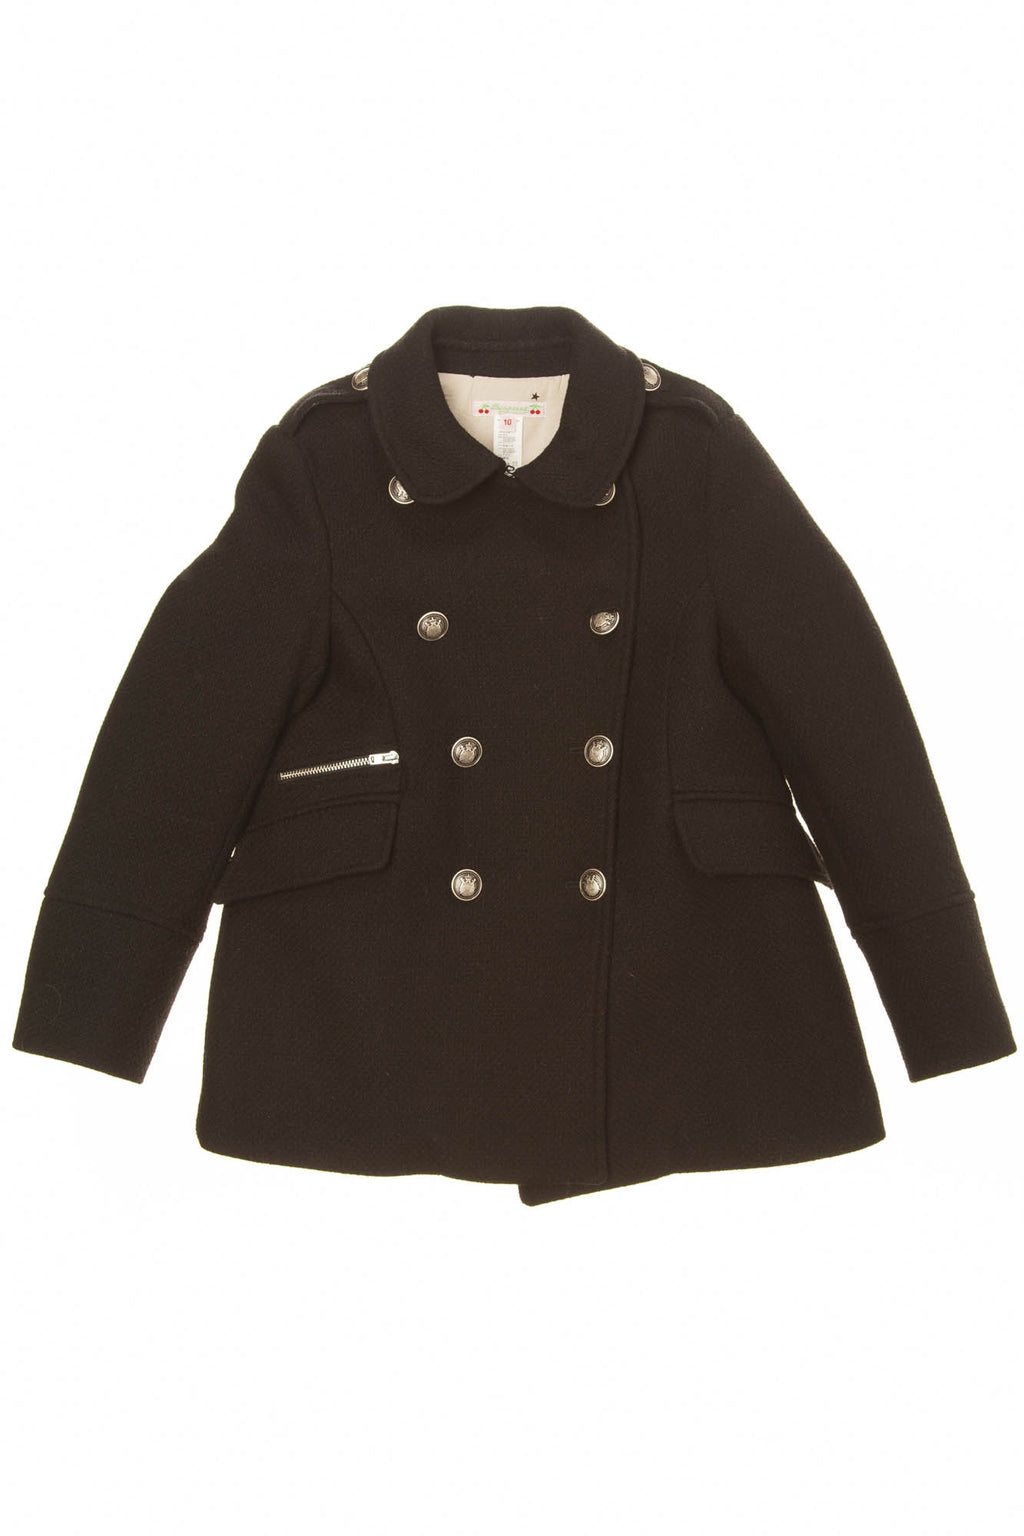 Bonpoint - Black Peacoat - 10